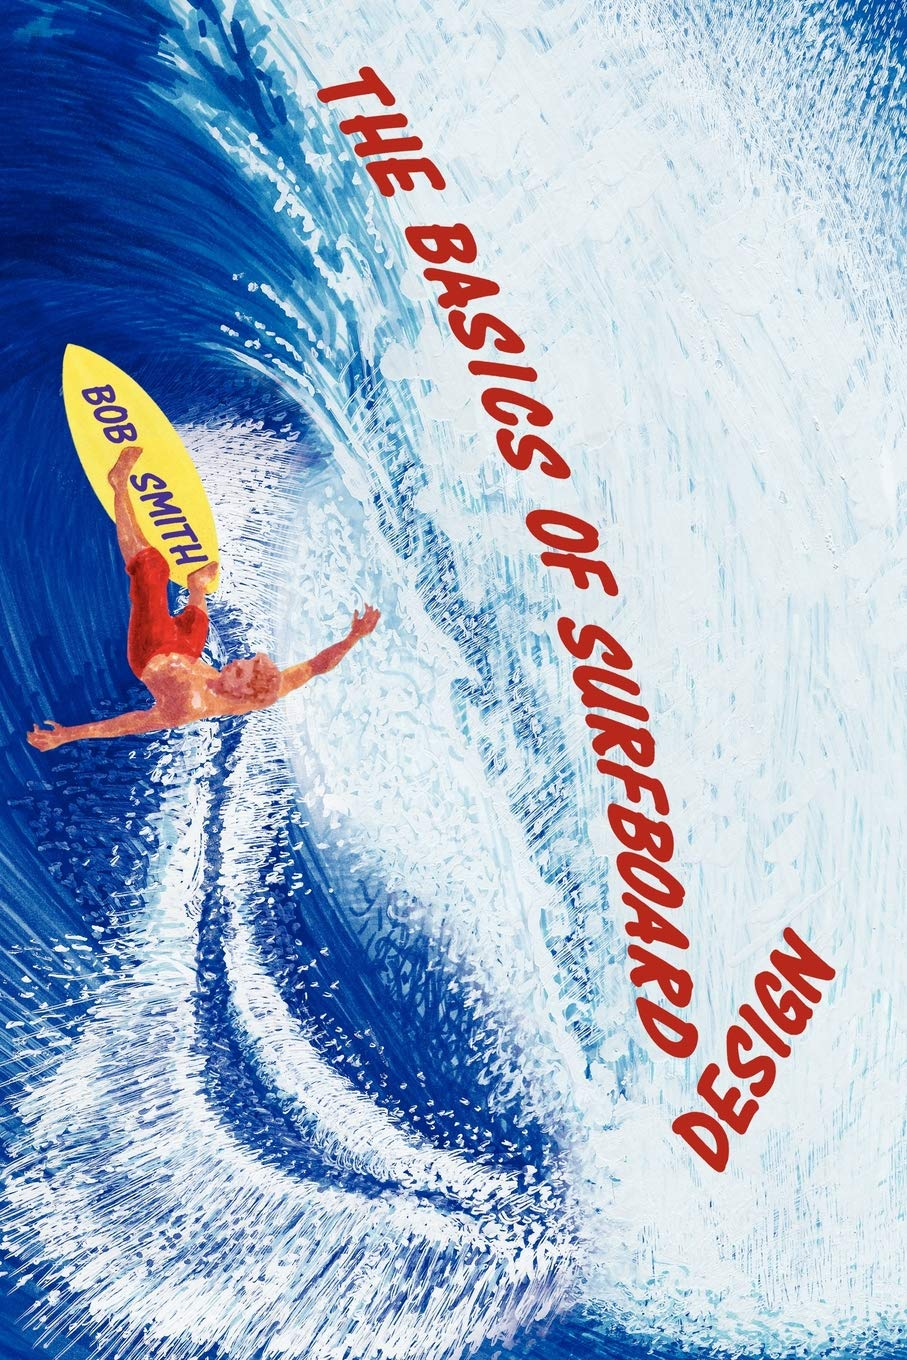 The Basics of Surfboard Design: Know Surfing and Surf Better by Understanding the Surfboard Shape; Key to Surfboard Shaping and Construction, or An Illustrated Guide for Surfers, Shapers, Enthusiasts